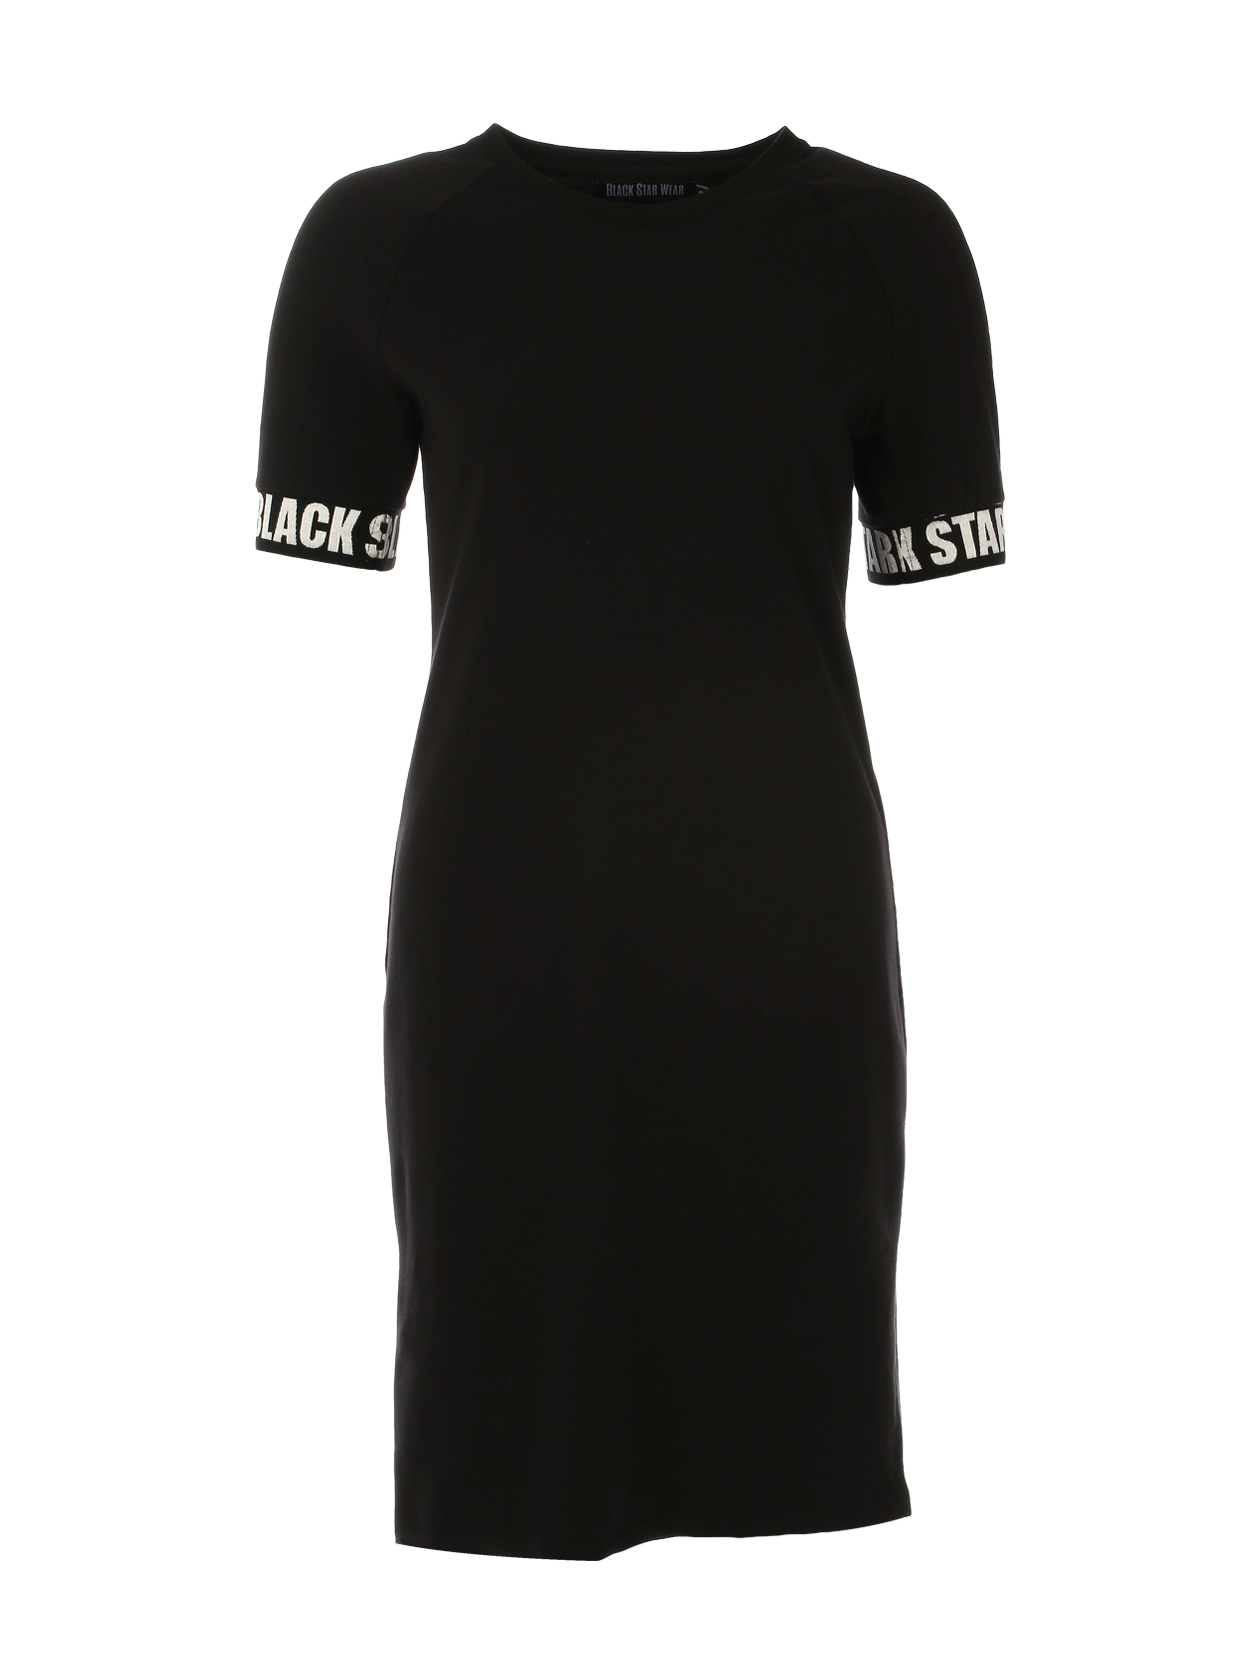 Womens dress Black 13 от BlackStarWear INT